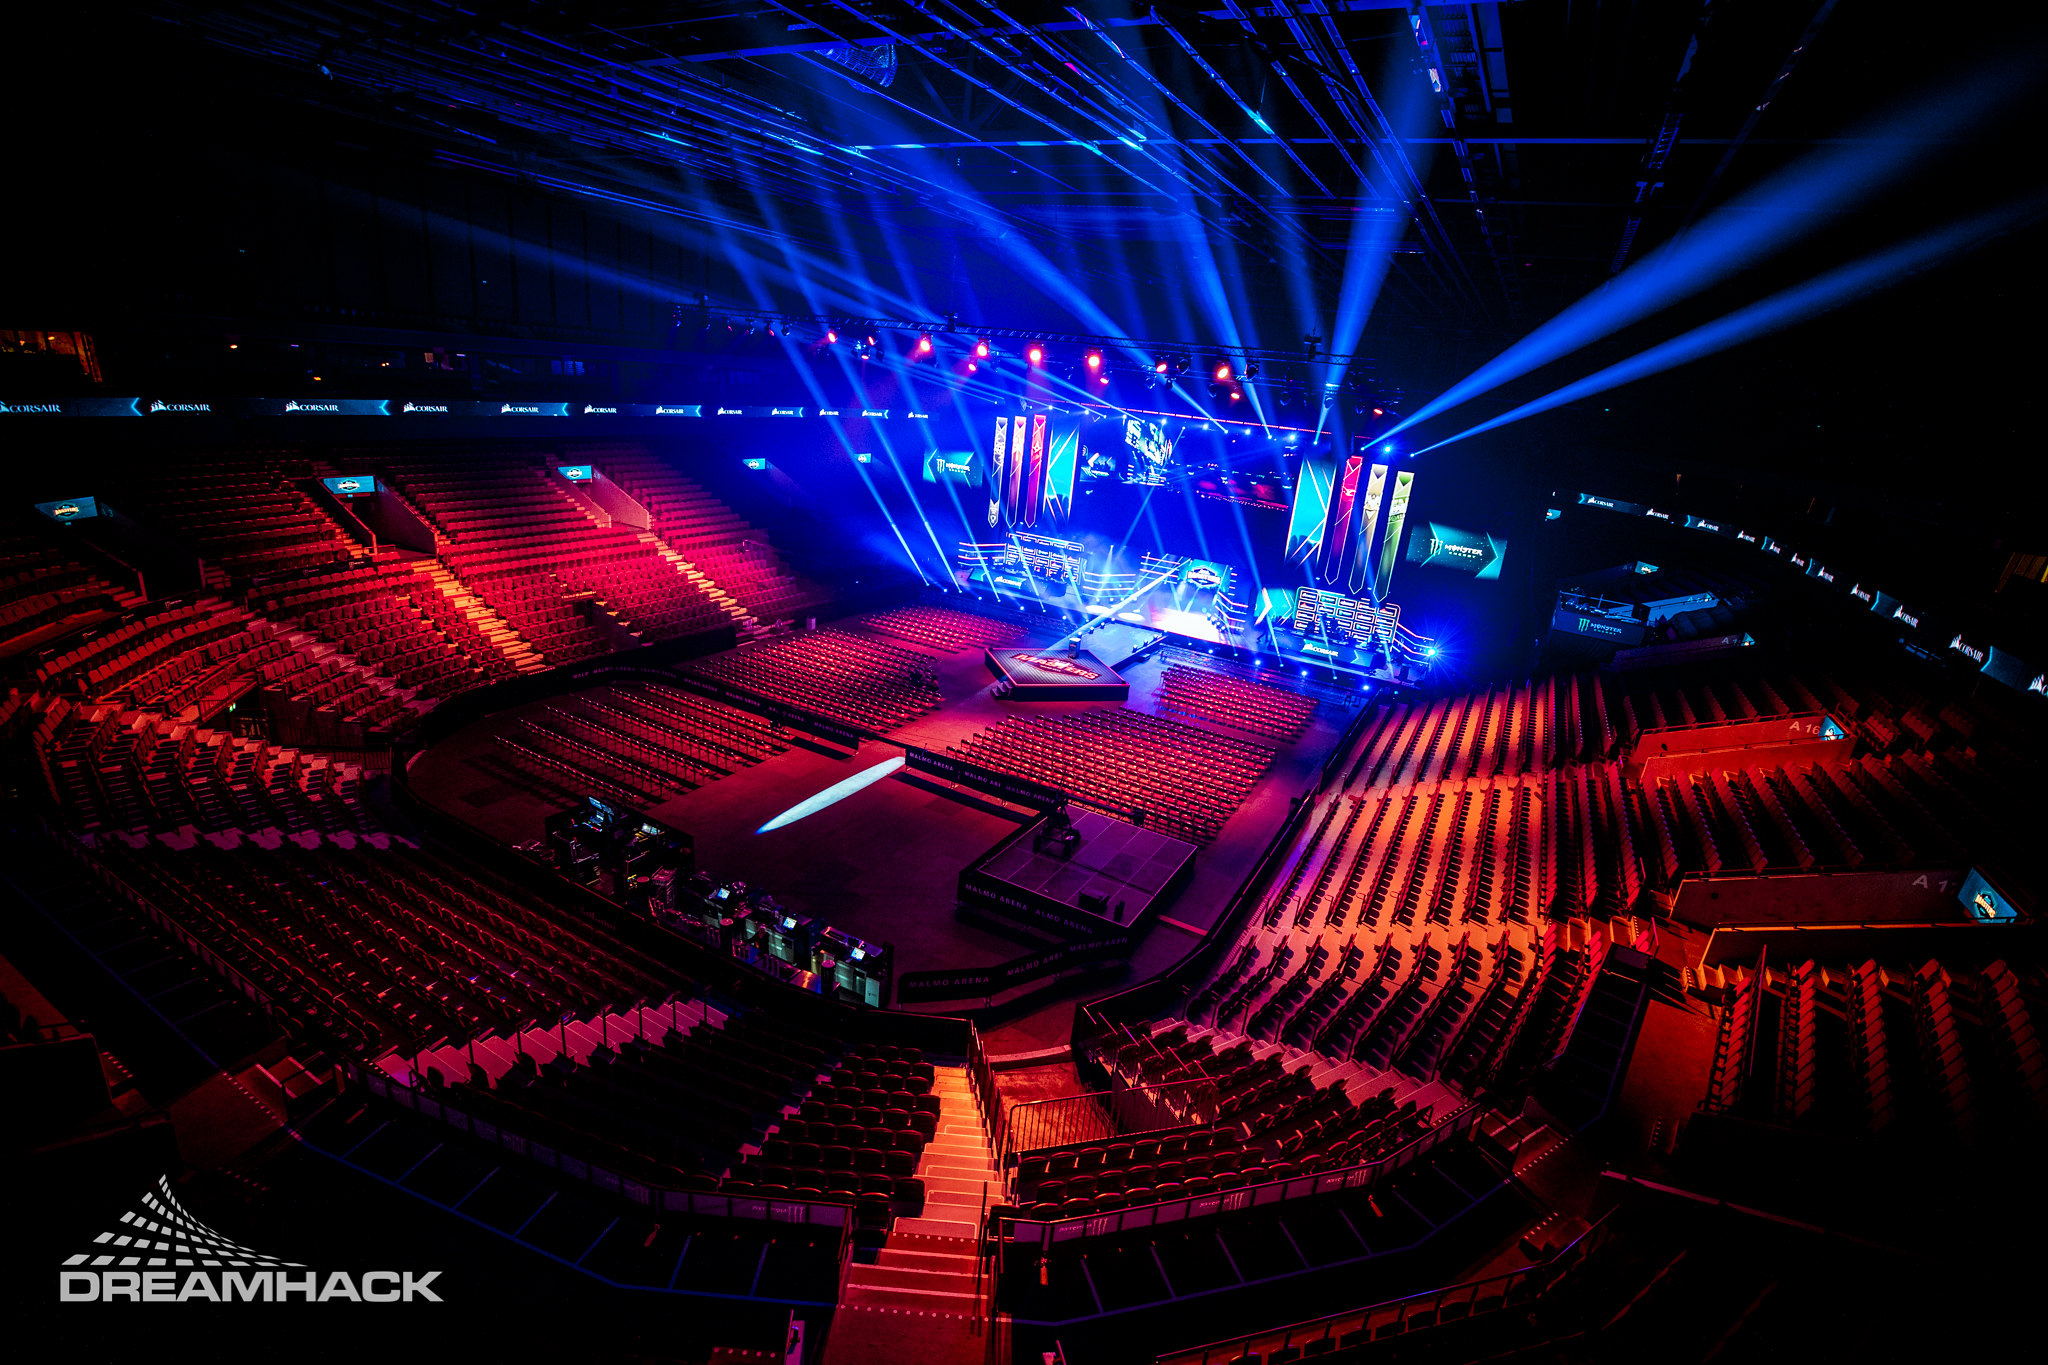 DreamHack changes its first Masters event of 2020 to online play